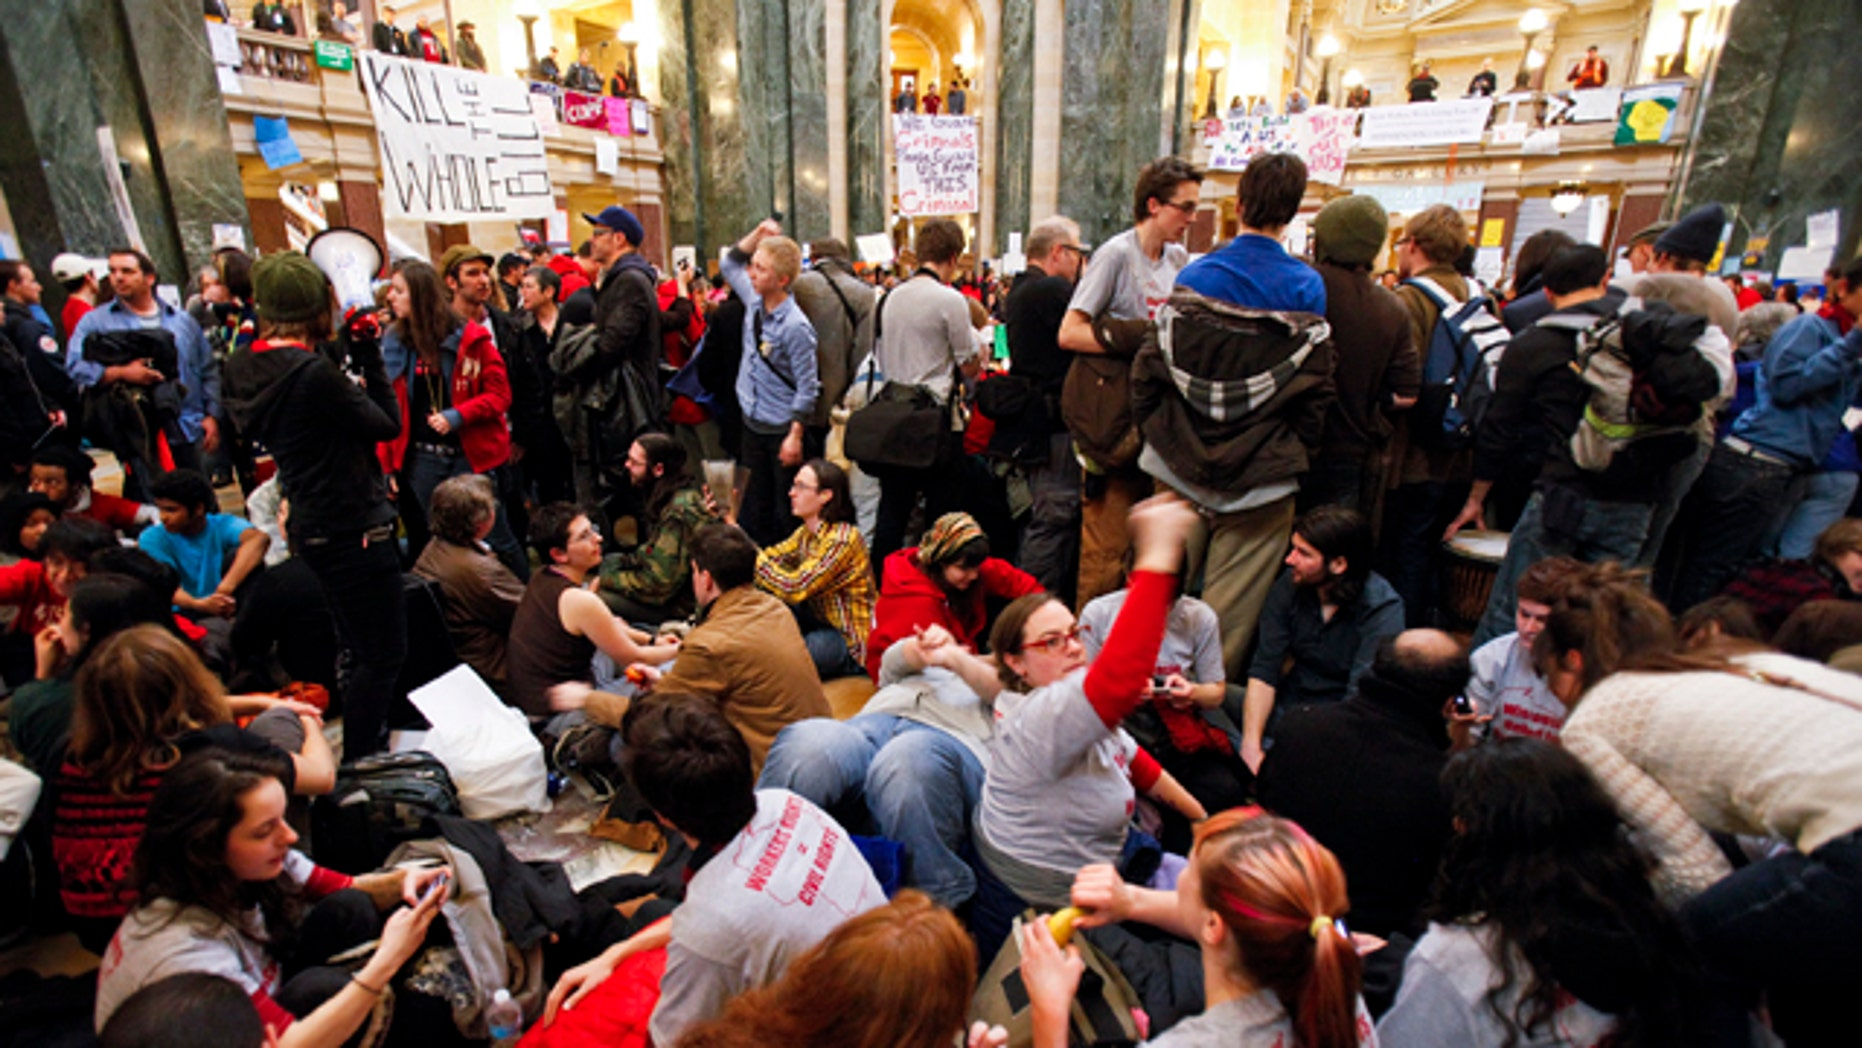 Feb. 27, 2011: Student Labor Action Coalition members demonstrate at the state Capitol in Madison, Wis.